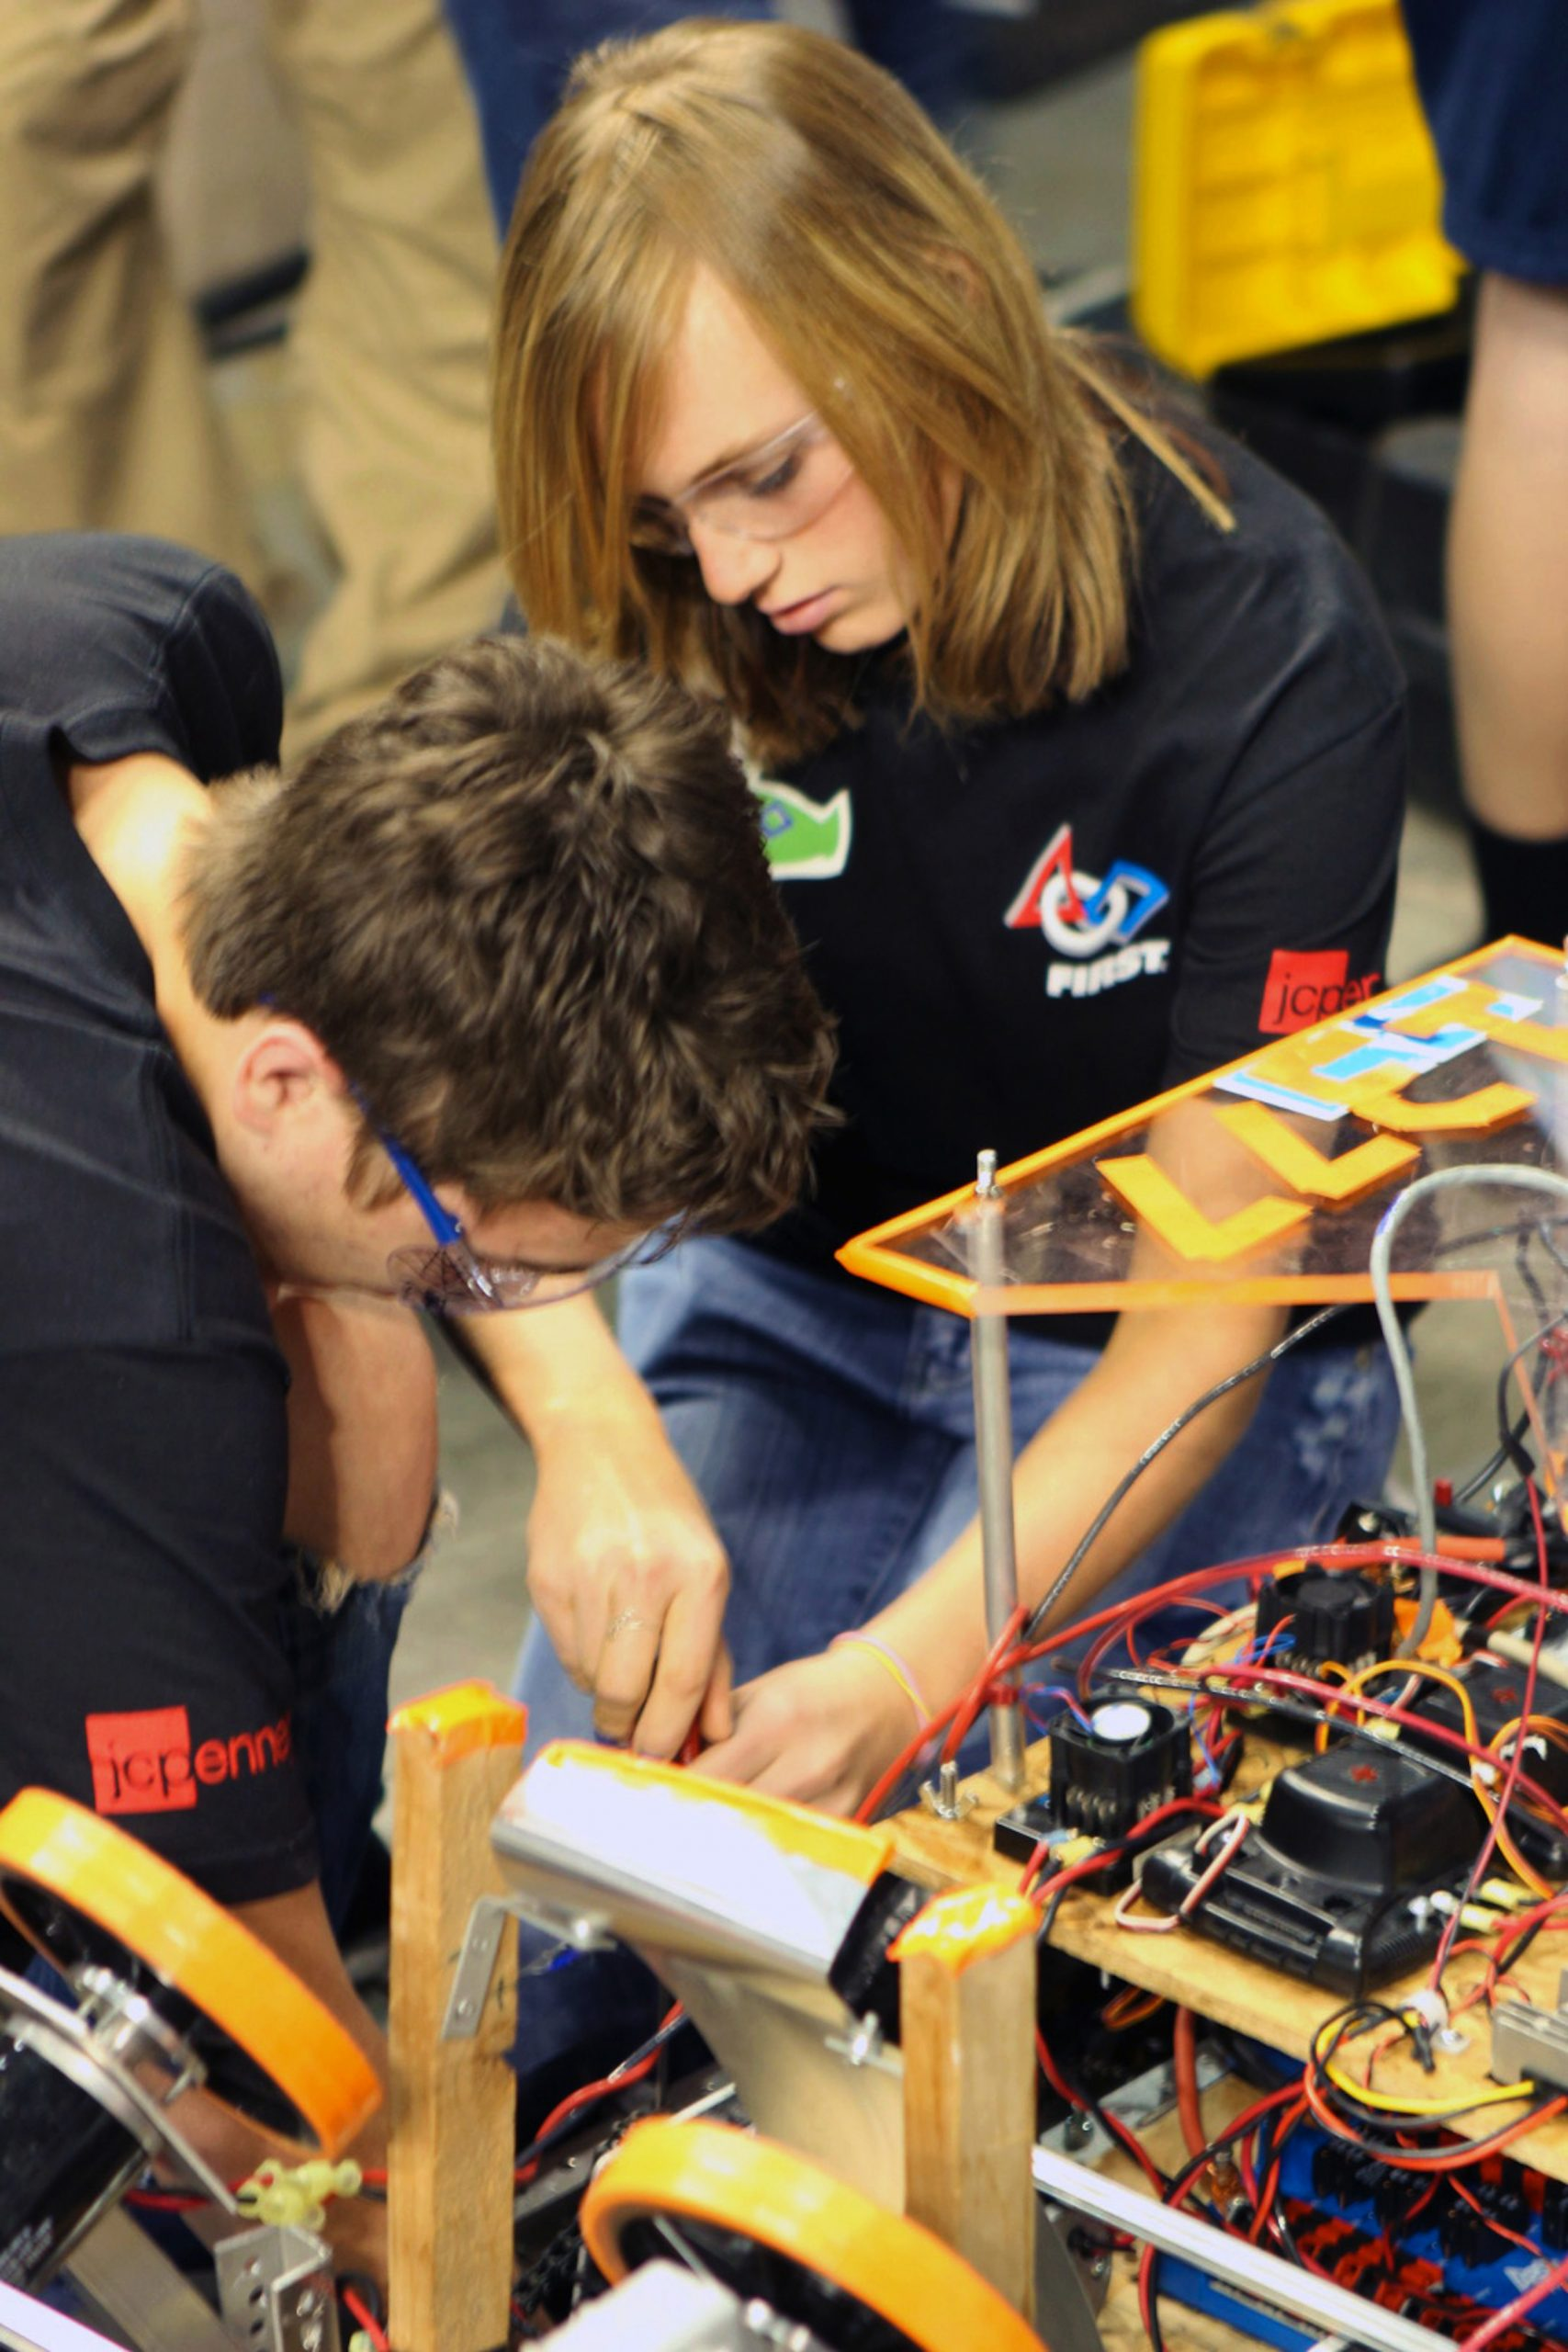 Utah high school students are shown here during a 2012 robotics competition. The 2013 competition kicks off Saturday, Jan. 5 at Hunter High School in West Valley City, Utah. It is co-sponsored by the University of Utah and is among more than 80 such events in the United States and four other countries as part of the For Inspiration and Recognition of Science and Technology -- or FIRST -- Robotics Competition that involves 2,550 teams and 52,000 high school students. Twenty teams of Utah high school students will design and build robots during the event.